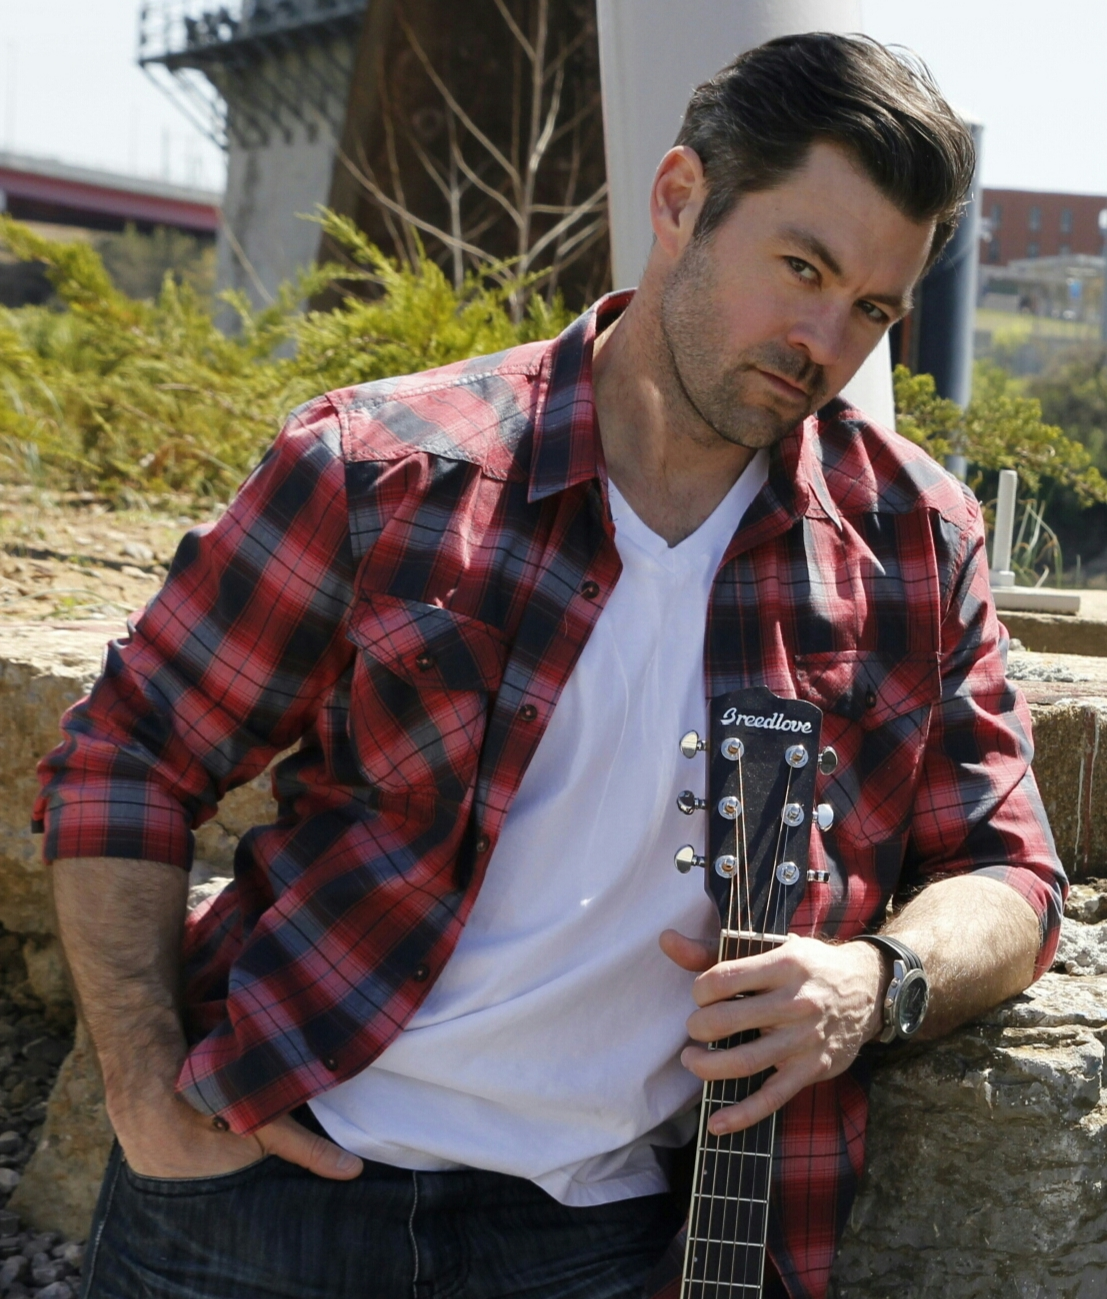 JEFF BOHANNON - Jeff is co-owner and lead producer at JBO Music Productions. His expertise spans a wide range of musical genres, from rock to pop, country to classical. Jeff is a trained vocalist and keyboardist, holding a bachelor's degree in voice performance. As a performer in the 90s, Jeff cut his teeth as an opera singer, but his true passion is producing. He has a keen ear and understands that an artist MUST have a say when it comes to producing their song! So Jeff works hard to communicate with the songwriter/artist to make sure he knows (and GETS!) the sound they want. His proudest accomplishment is the hundreds of satisfied clients who have come back to him again and again for their production needs!